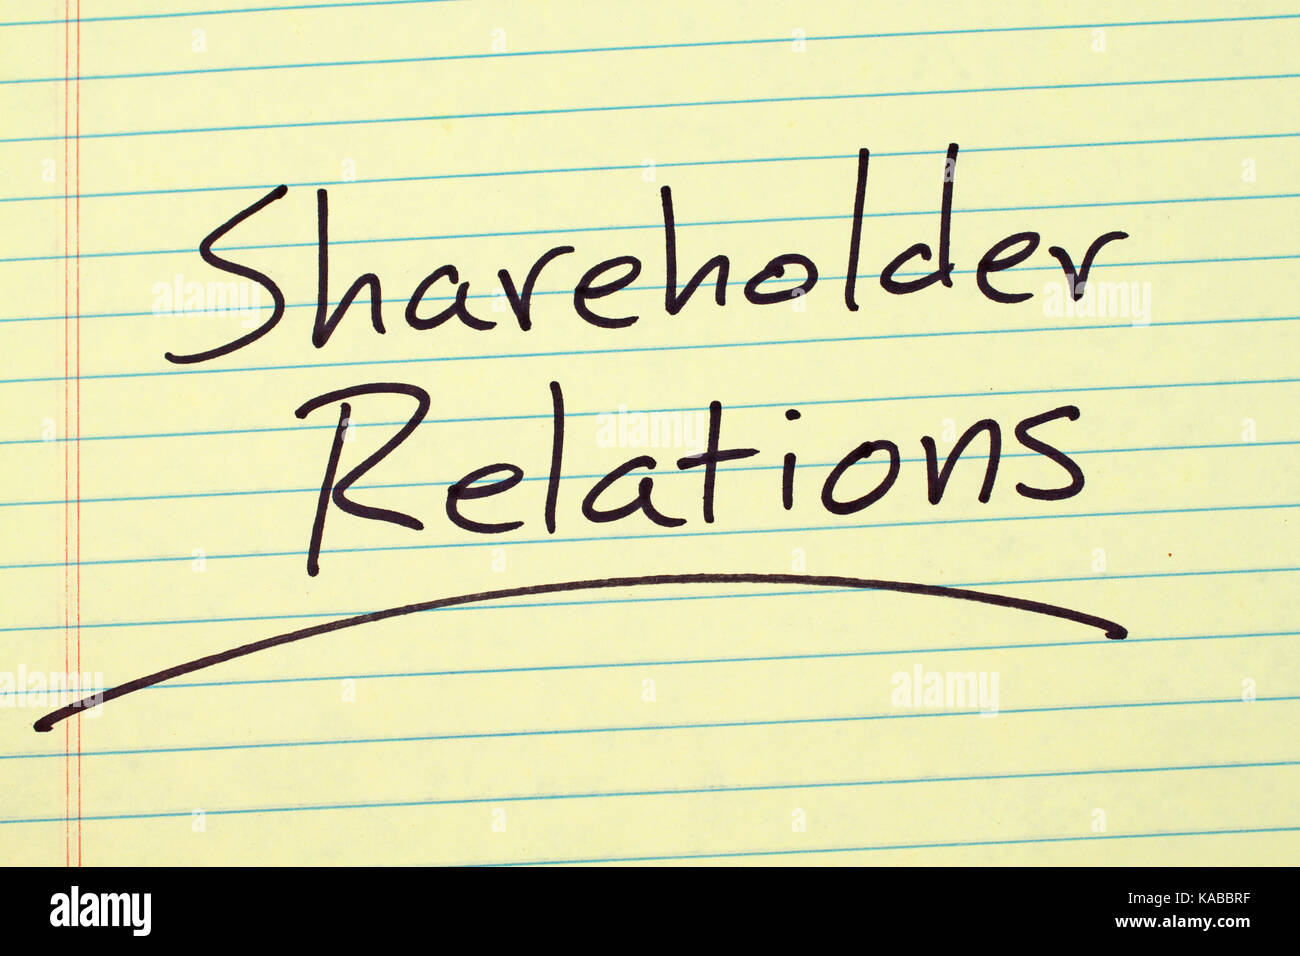 Investor relations stock photos investor relations stock images the word shareholder relations underlined on a yellow legal pad stock image kristyandbryce Images